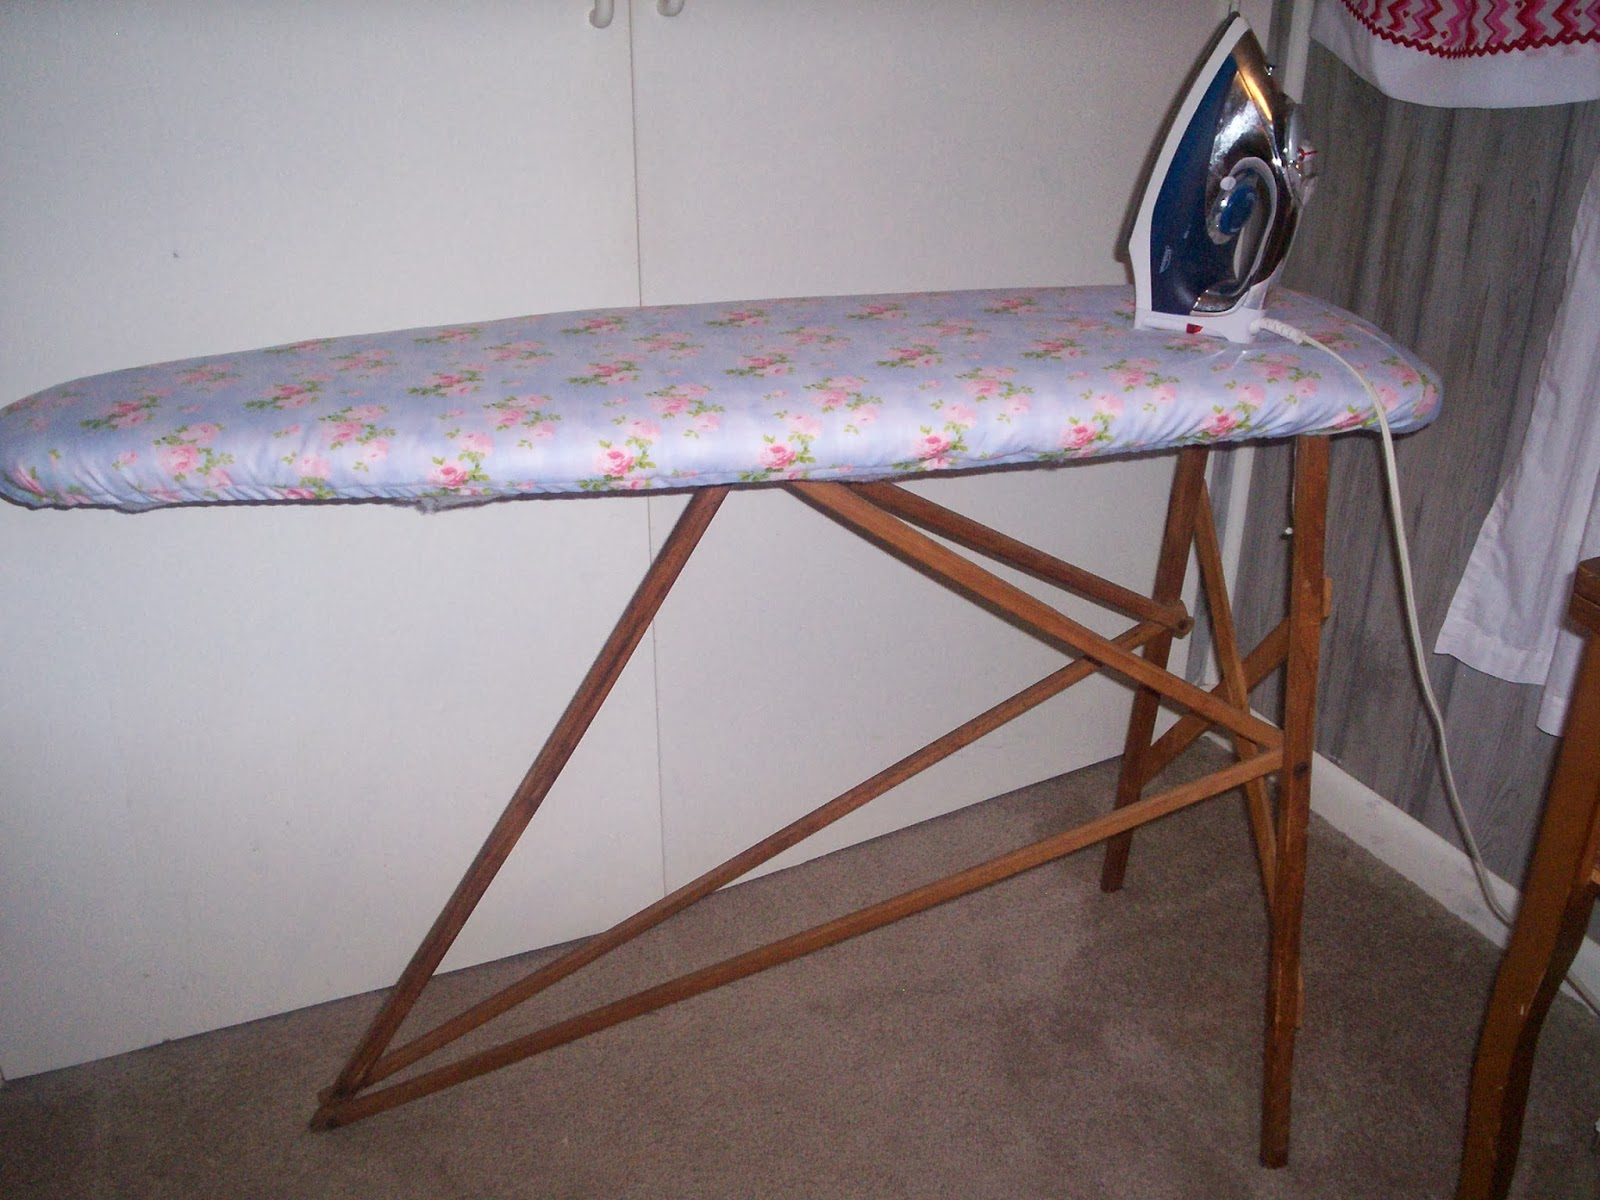 ironing board furniture. Here Is My Finished Antique Ironing Board. A New Life Has Begun For It. Board Furniture